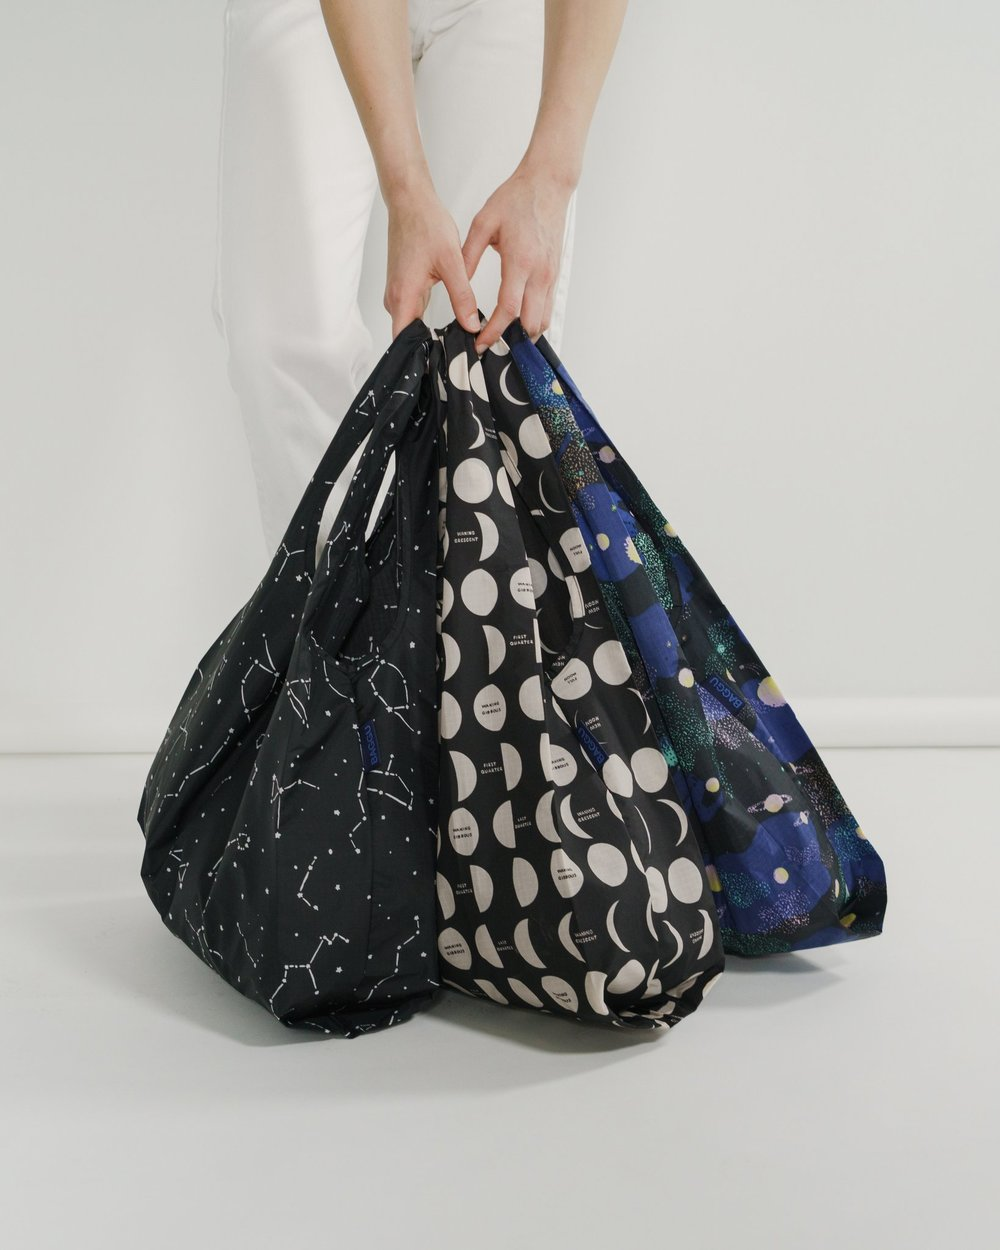 Standard_Baggu_Set_of_3_Constellation_Set-02_2048x2048.jpg